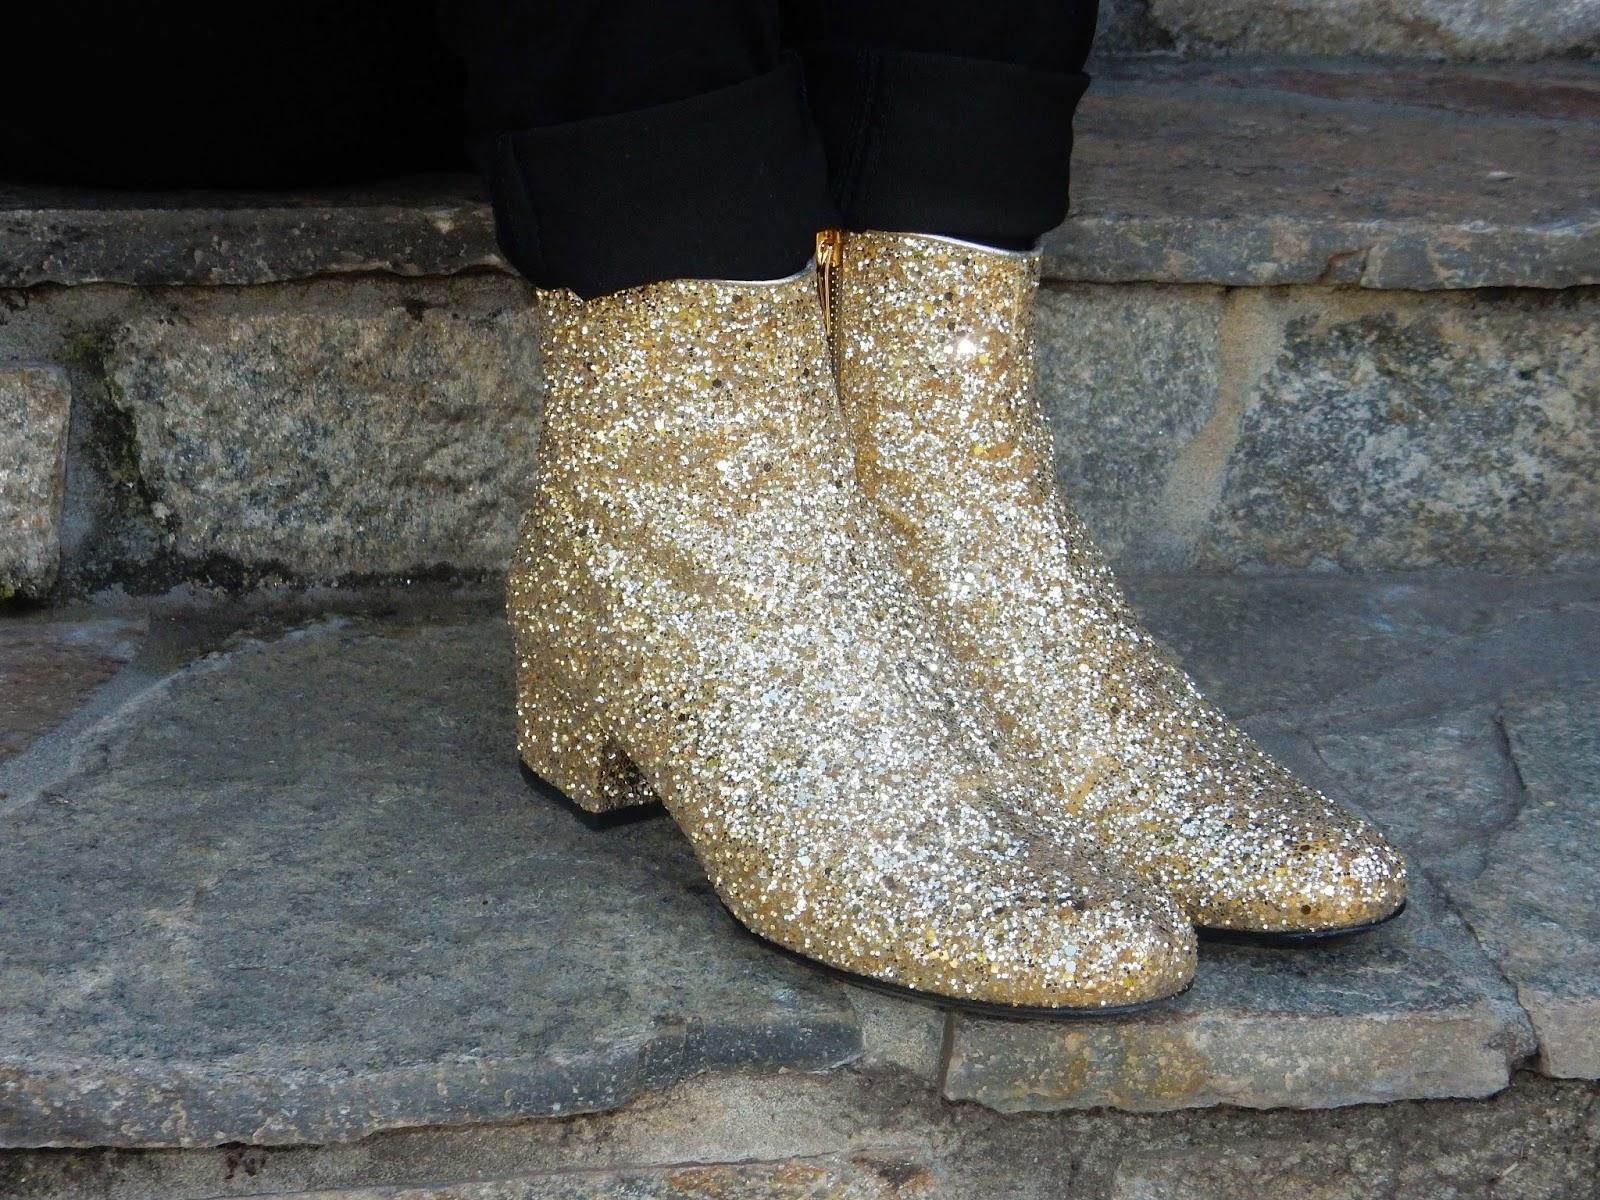 Super shiny saint laurent glitter boots from Barney's New York